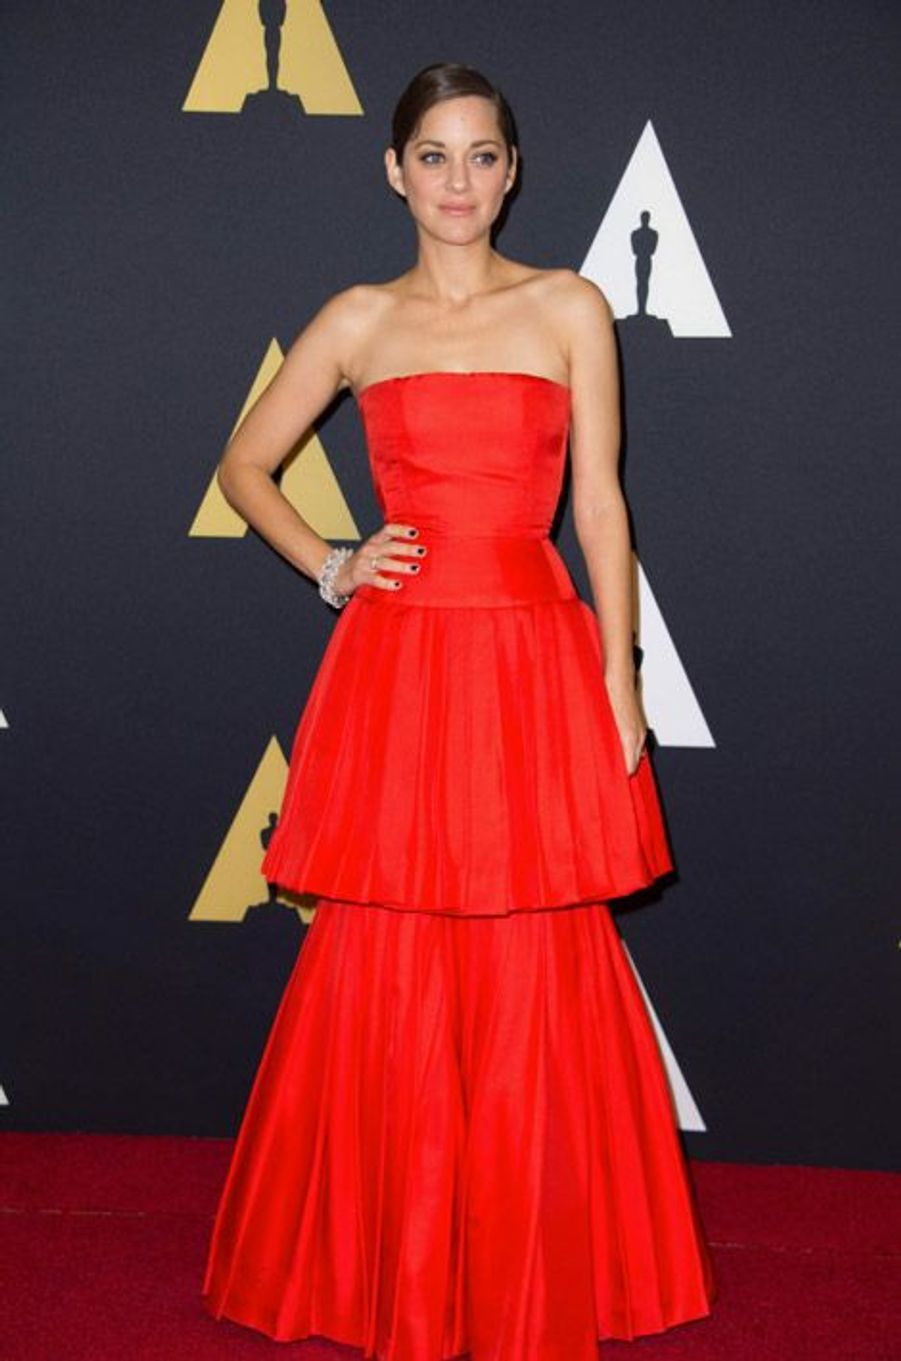 Le rouge : Marion Cotillard lors des Governors Awards à Hollywood, le 8 novembre 2014